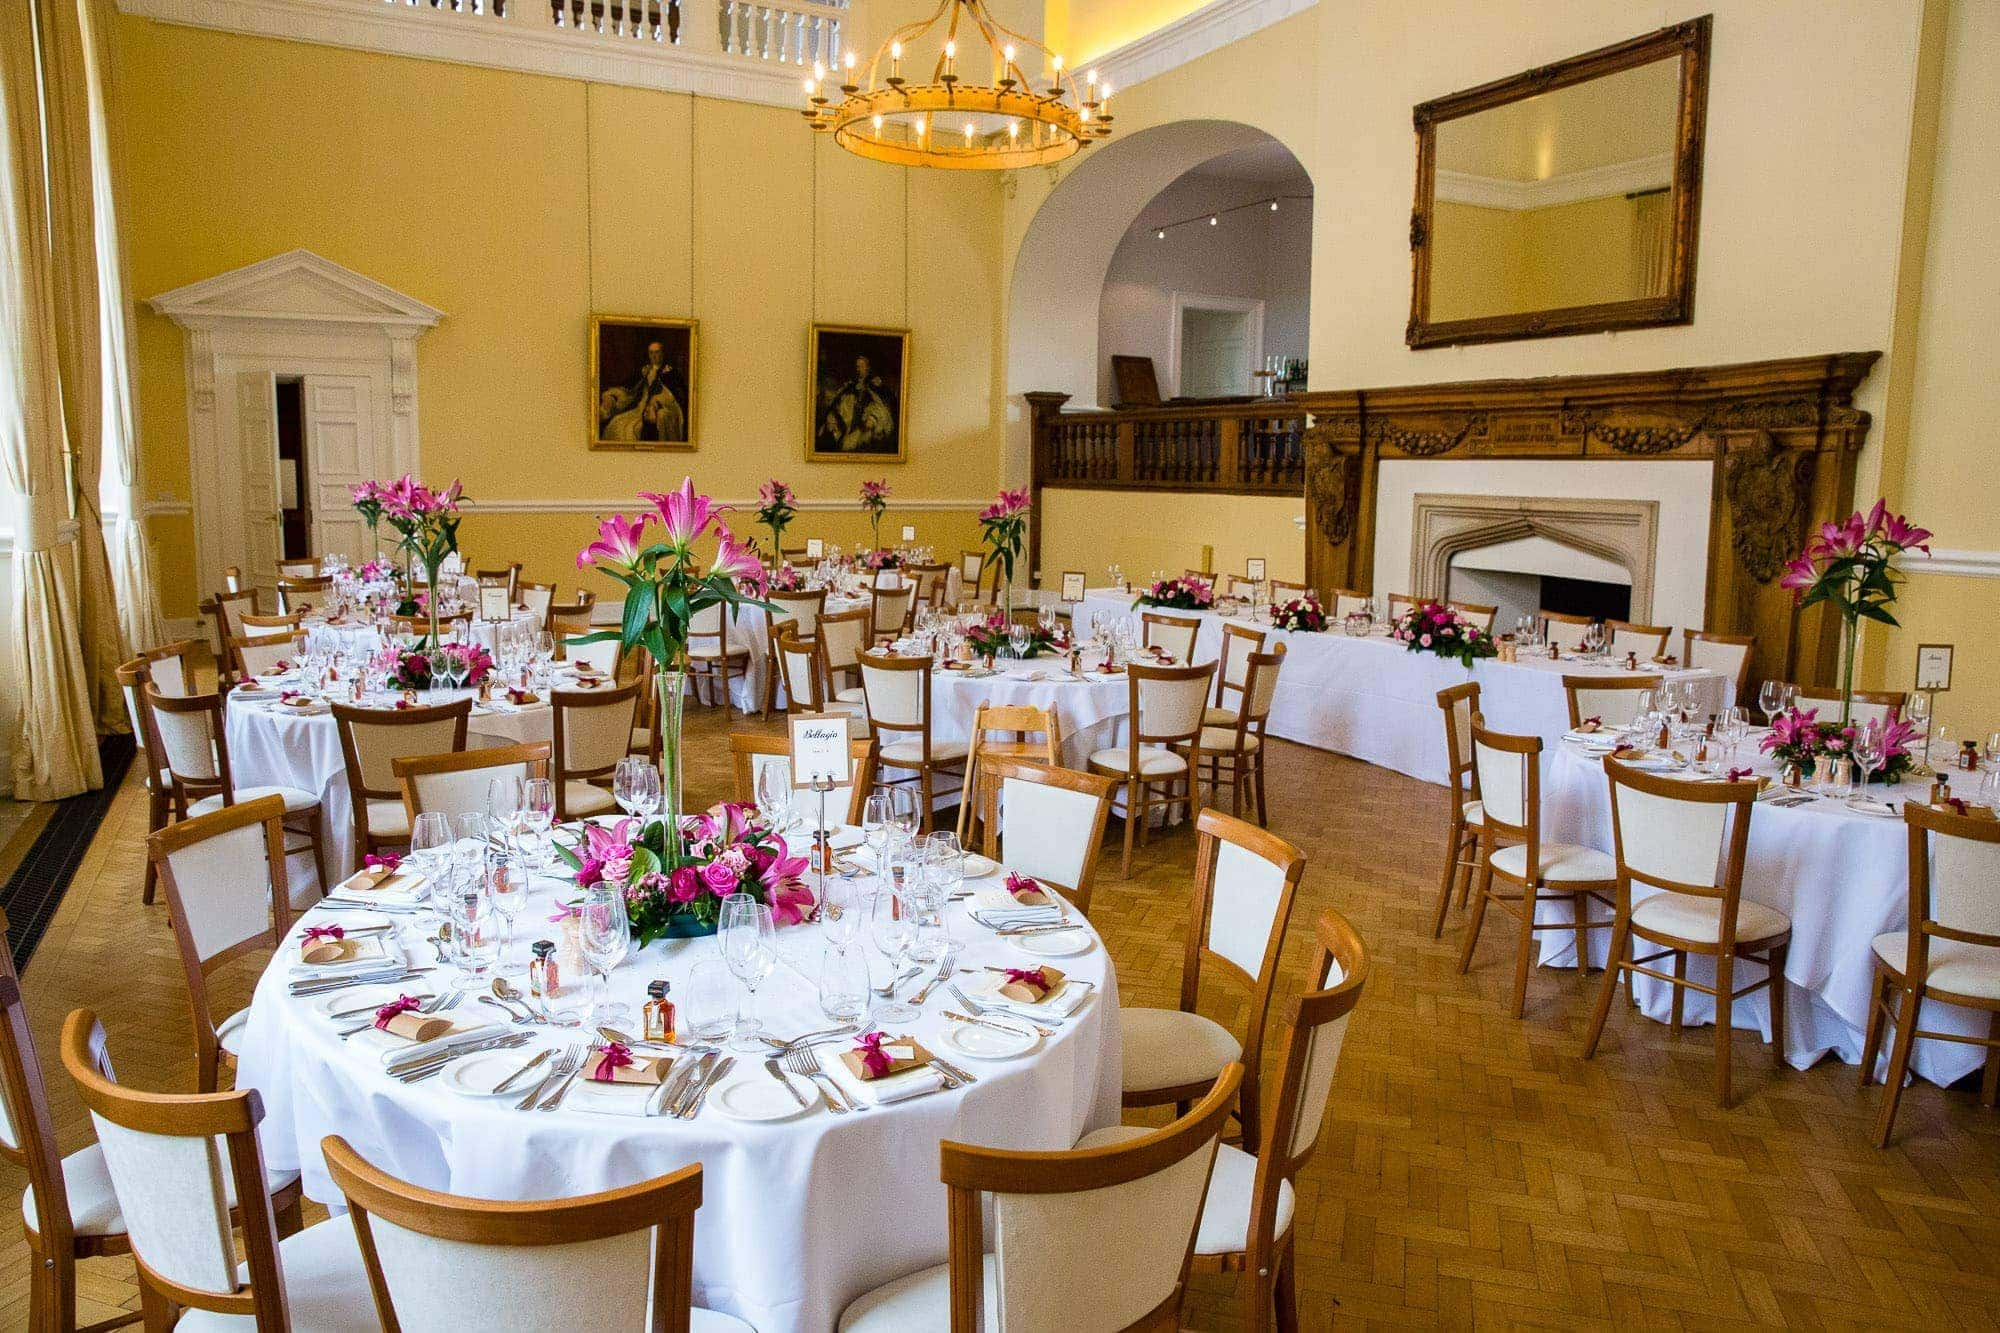 Farnham Castle Great Hall set up for wedding with pink flower decorations